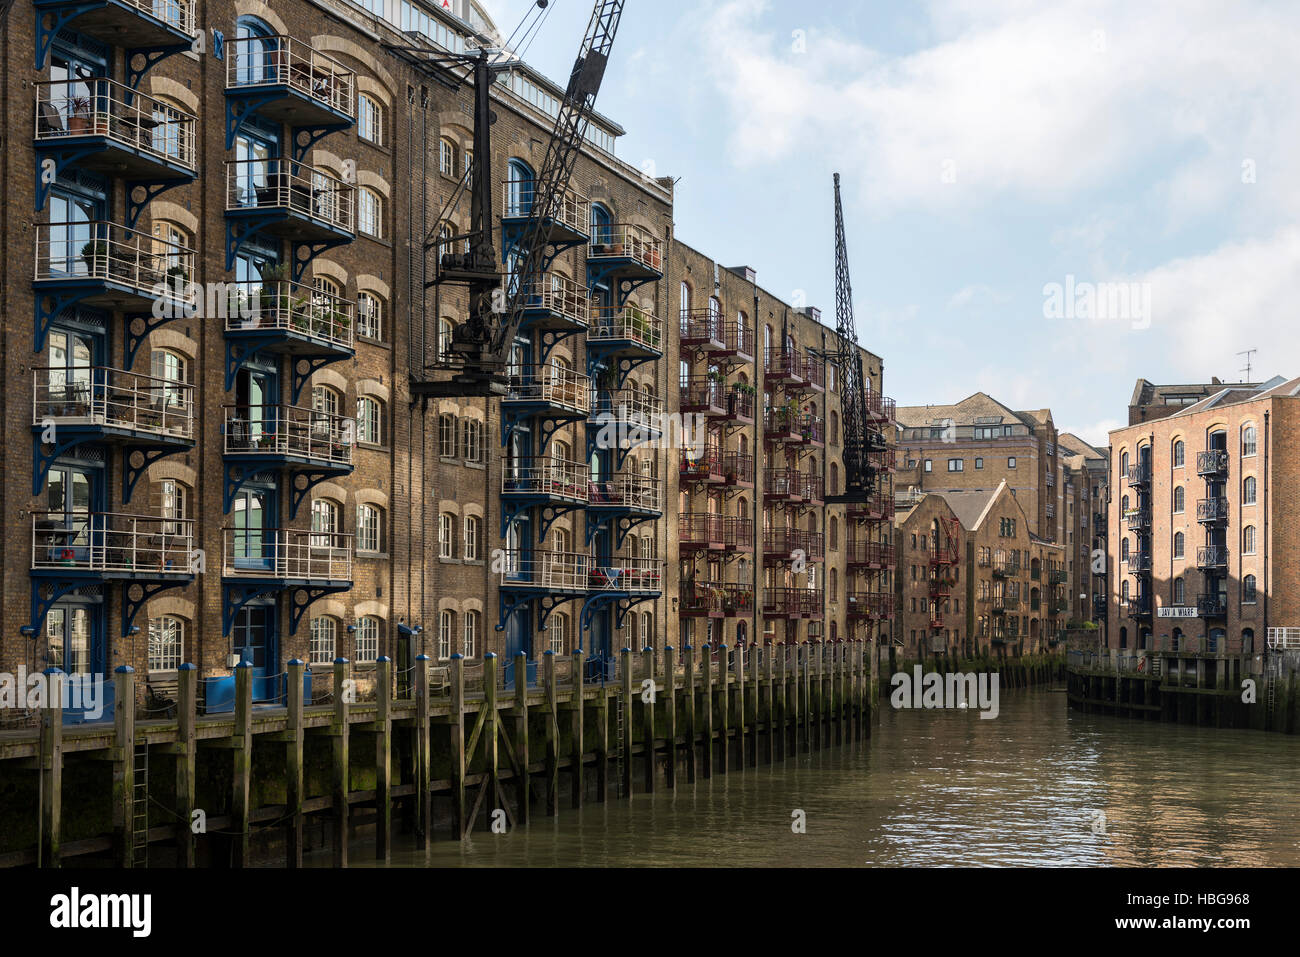 Houses at harbour basin, St. Saviour's Dock, Shad Thames, London, England, United Kingdom - Stock Image